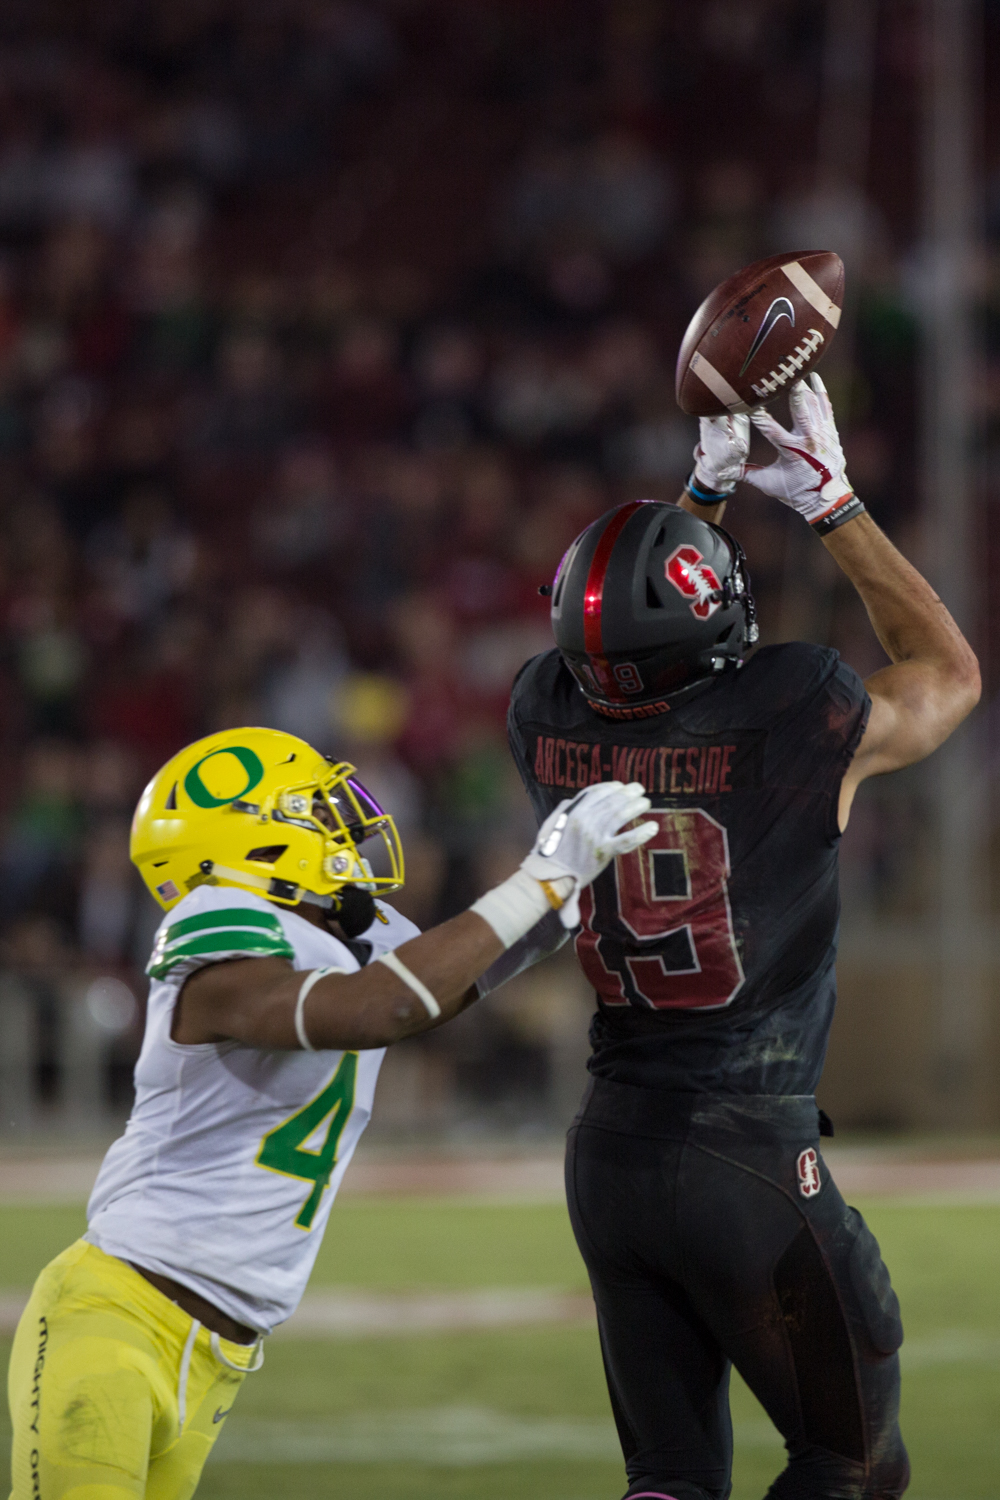 Stanford wide receiver JJ Arcega-Whiteside (#19) barely misses a deep pass while covered by Oregon cornerback Thomas Graham Jr. (#4).  The Oregon Ducks fell to the Stanford Cardinal 49-7 at Stanford Stadium, bringing their record to 4-3 for the season.  Photo by Austin Hicks, Oregon News Lab